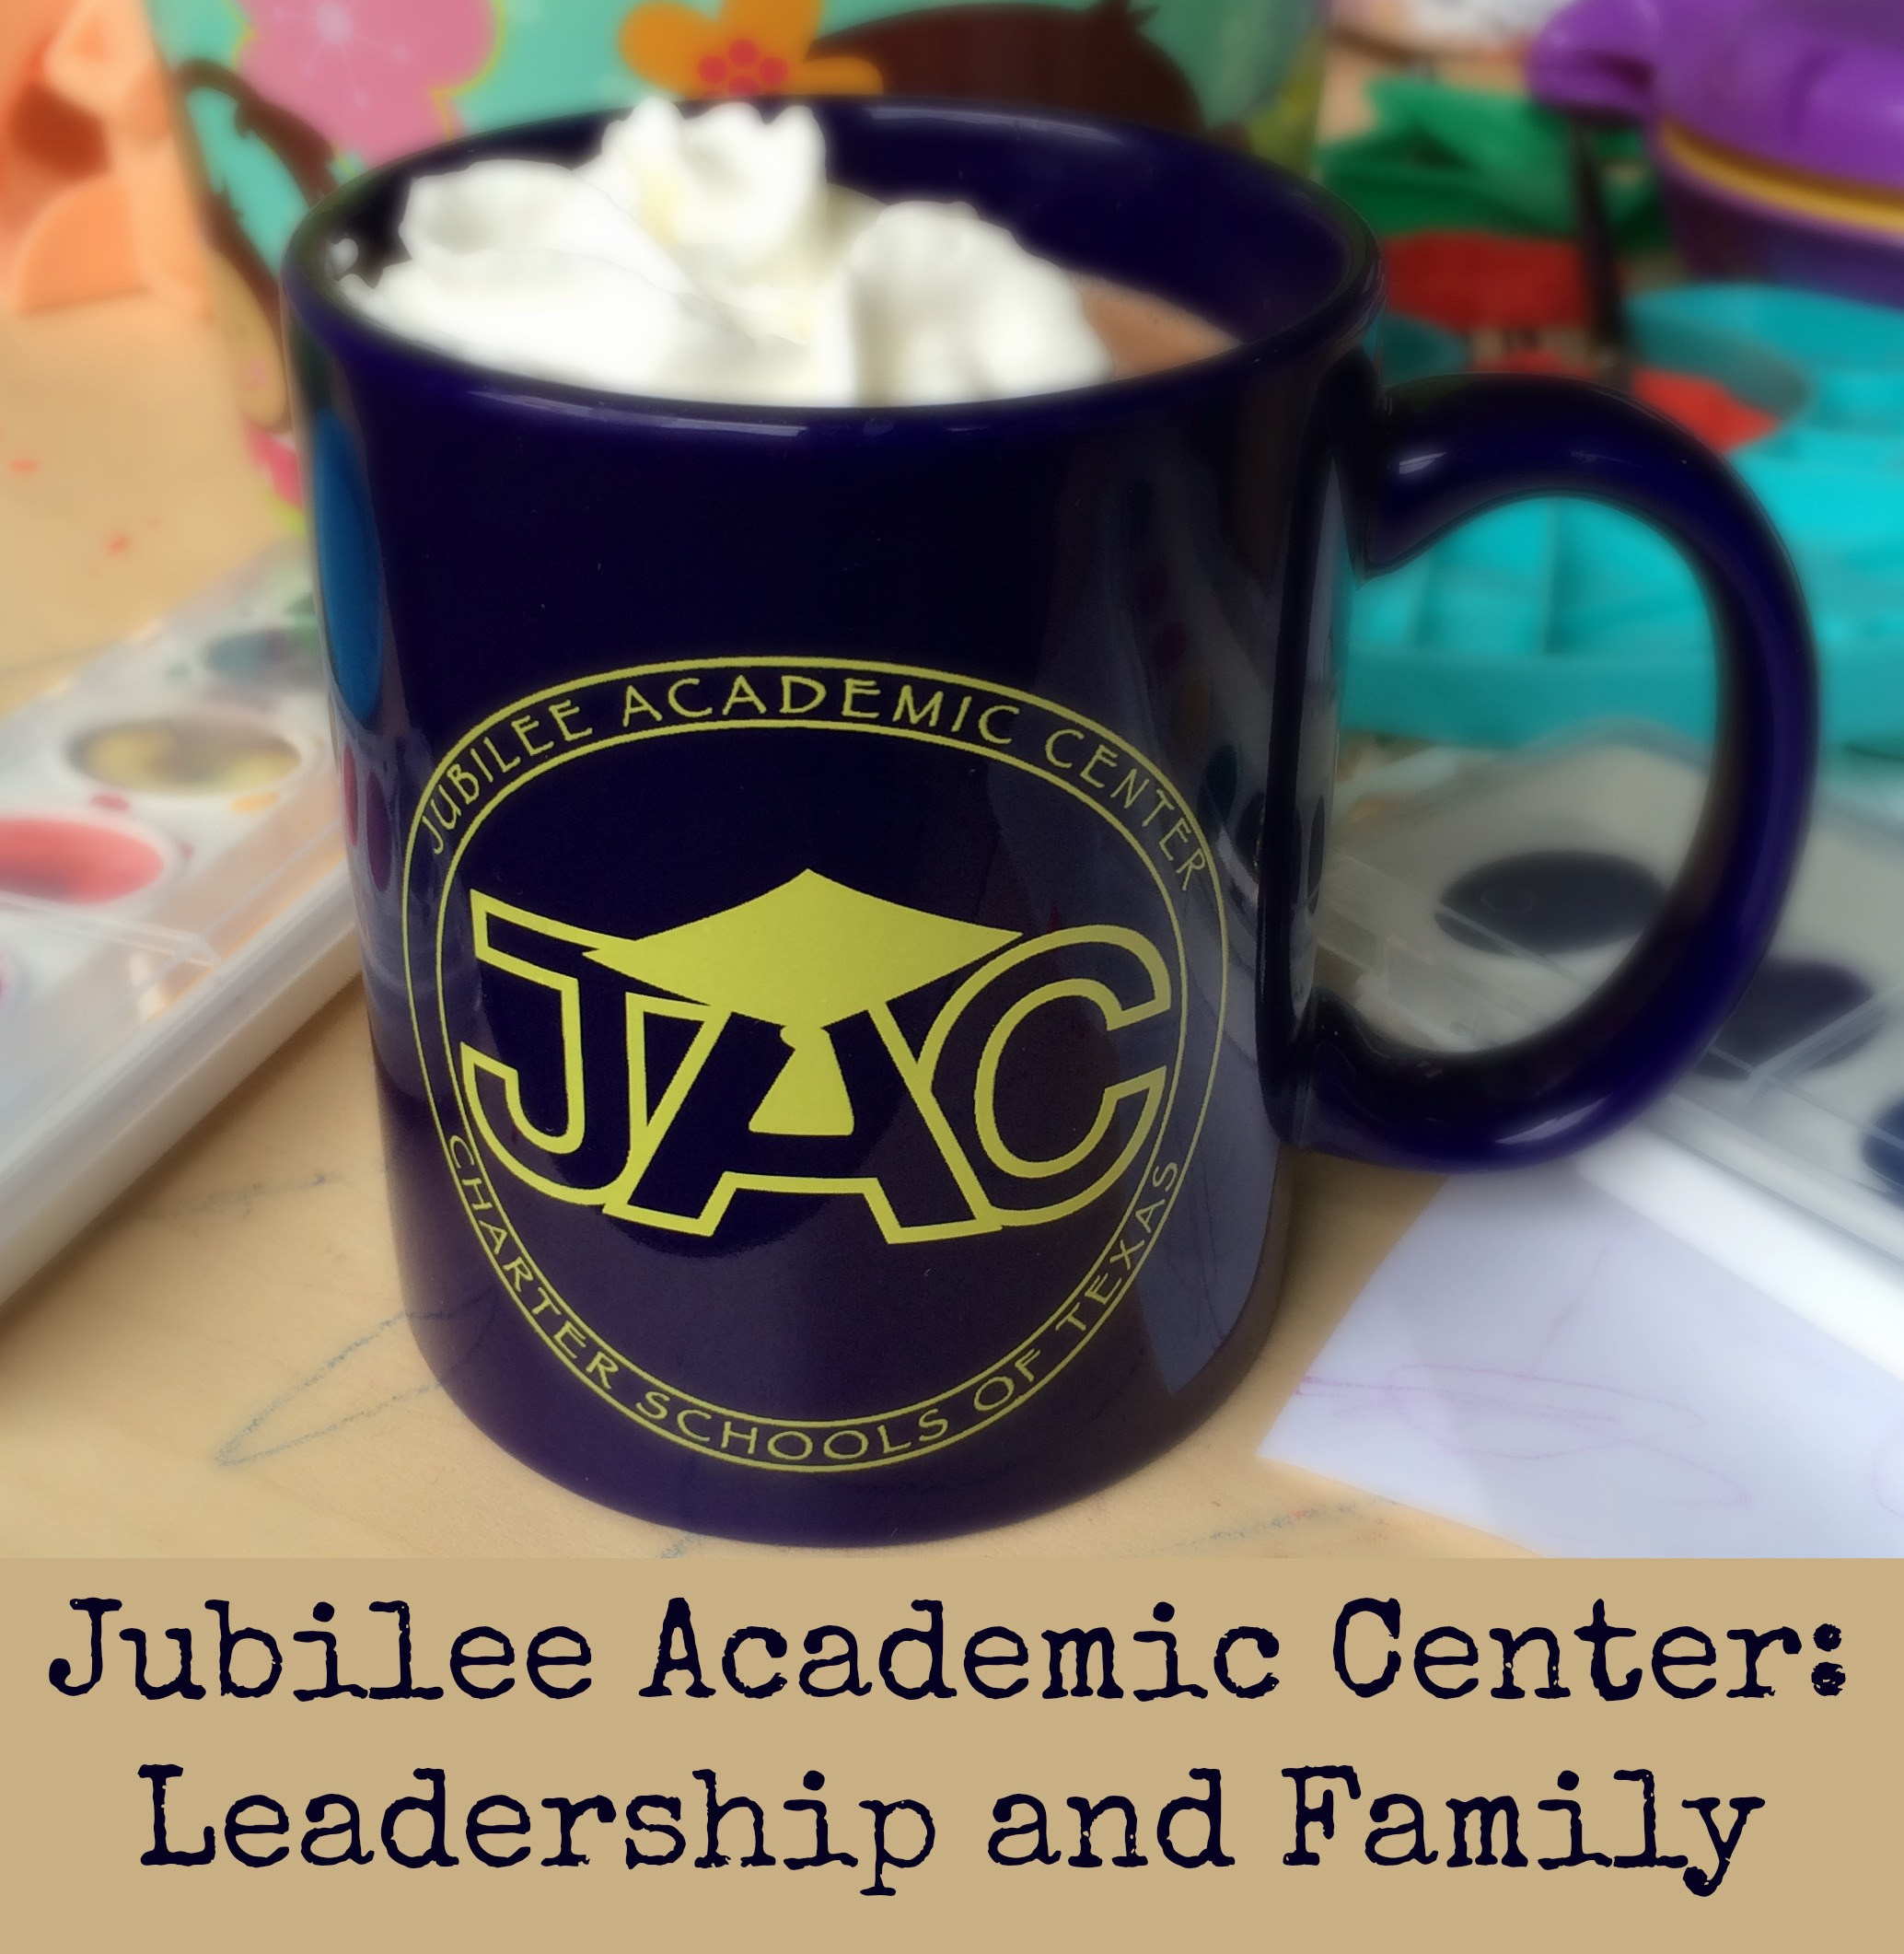 Jubilee Academic Center Teaches Leadership Skills In A